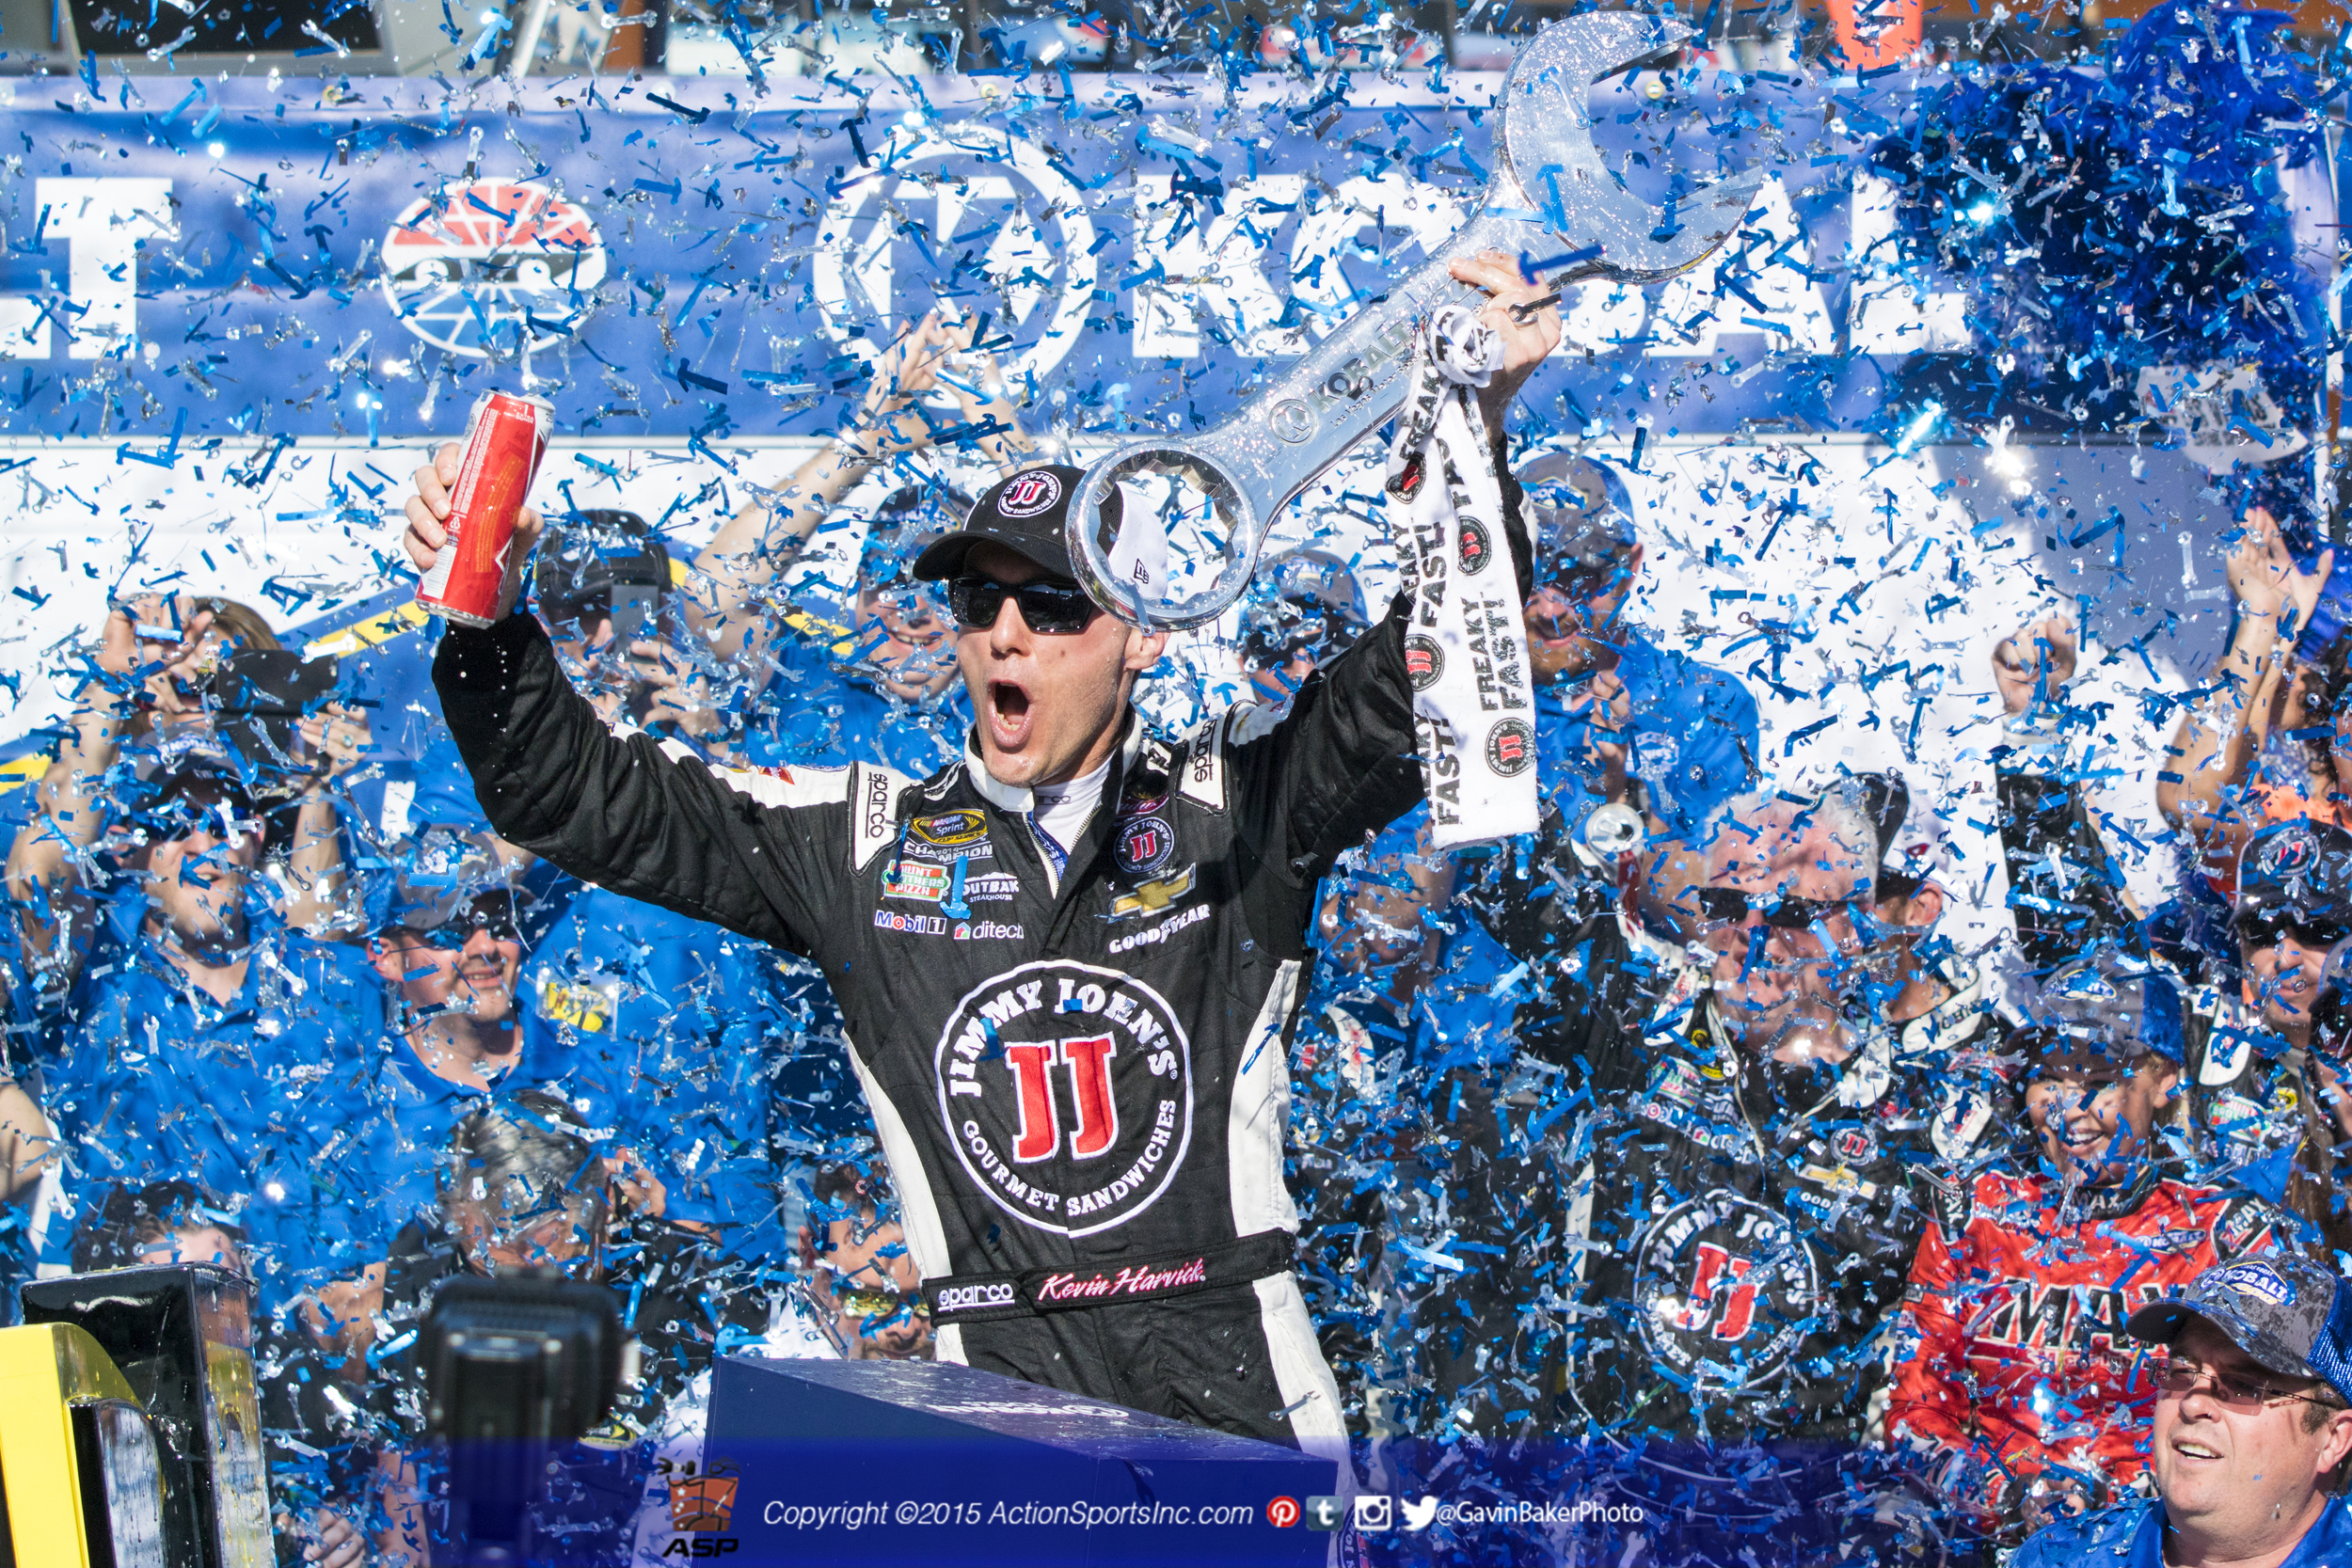 Kevin Harick (4) celebrates his win in victory lane holding his trophy above his head while confetti rains down around him.